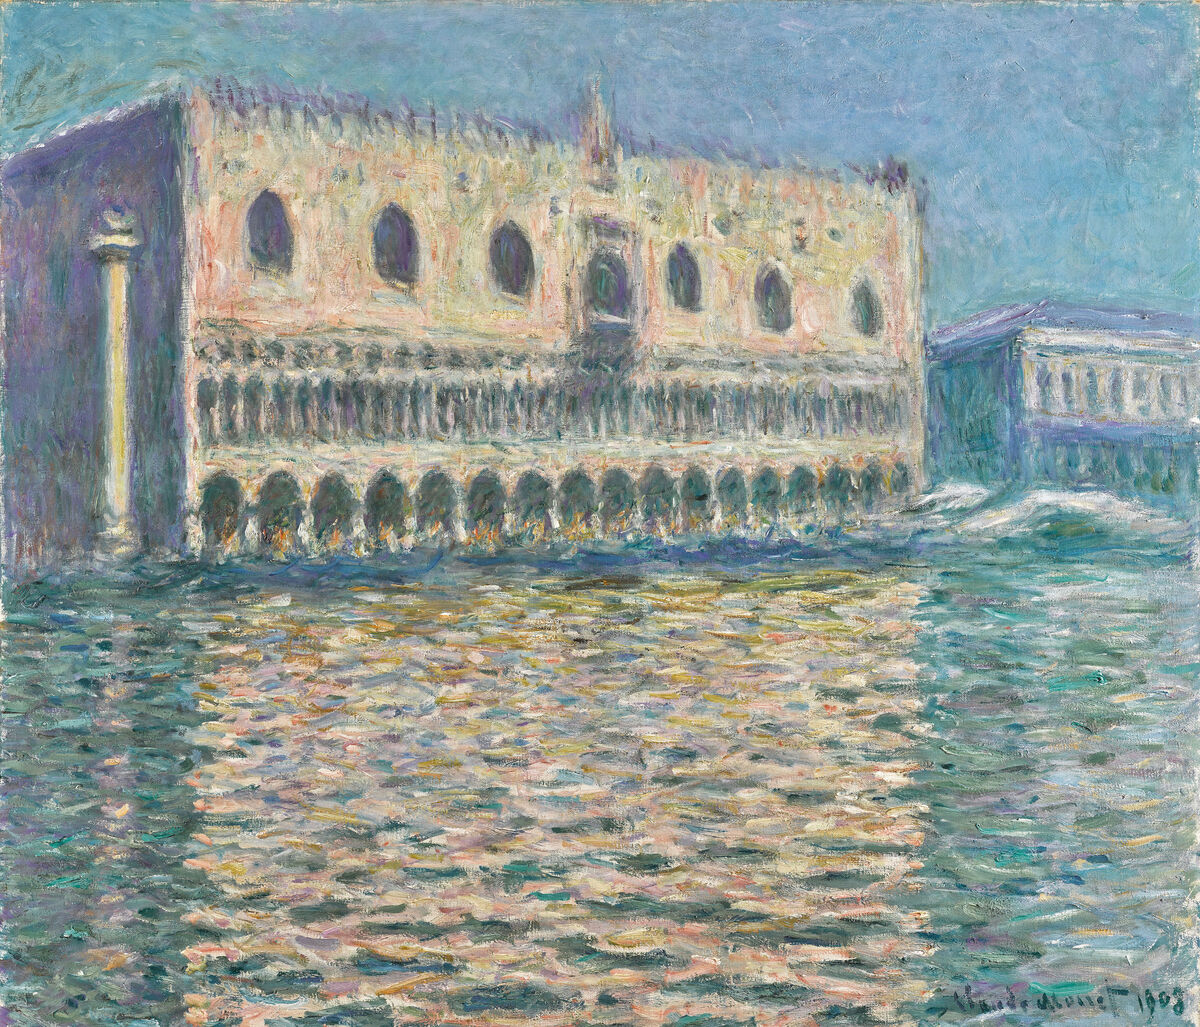 Claude Monet, Le Palais Ducal, 1908. Courtesy of Sotheby's.